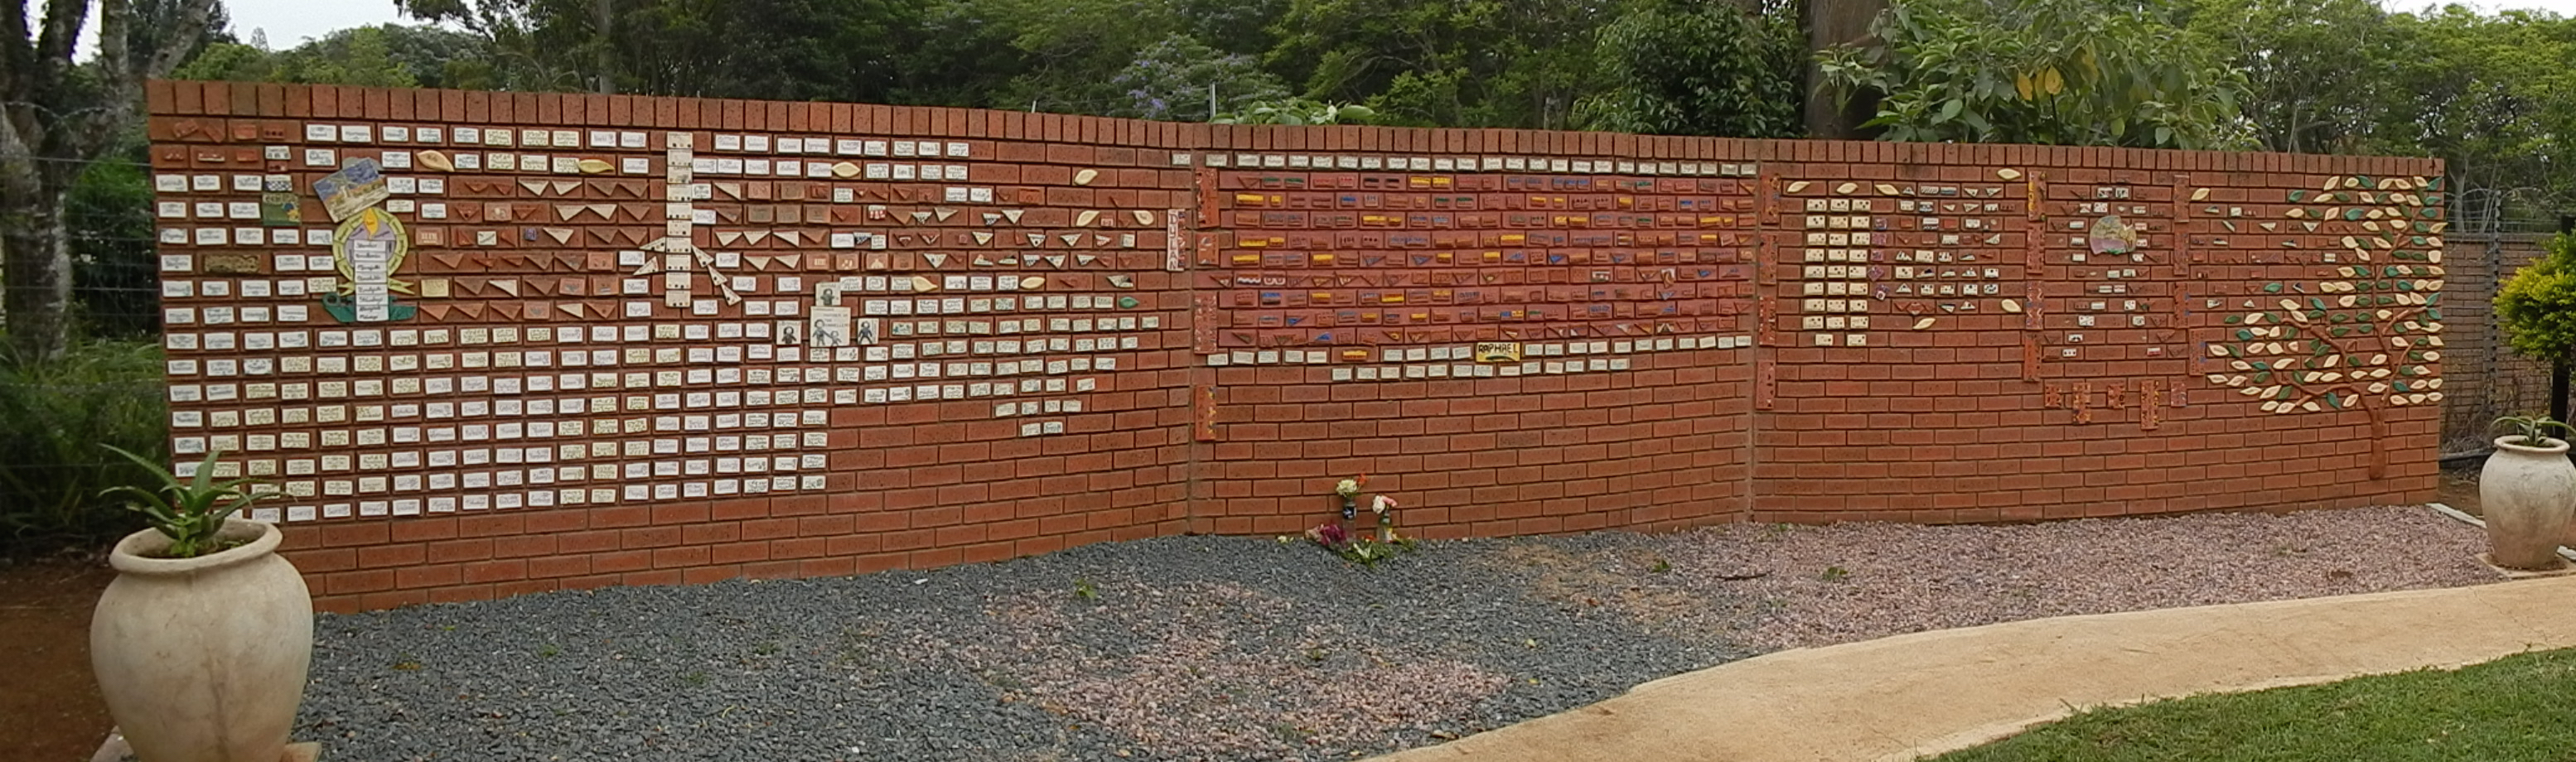 A 5-foot-tall wall of bricks that spans 20 yards and is painted with names of the patients who die here.